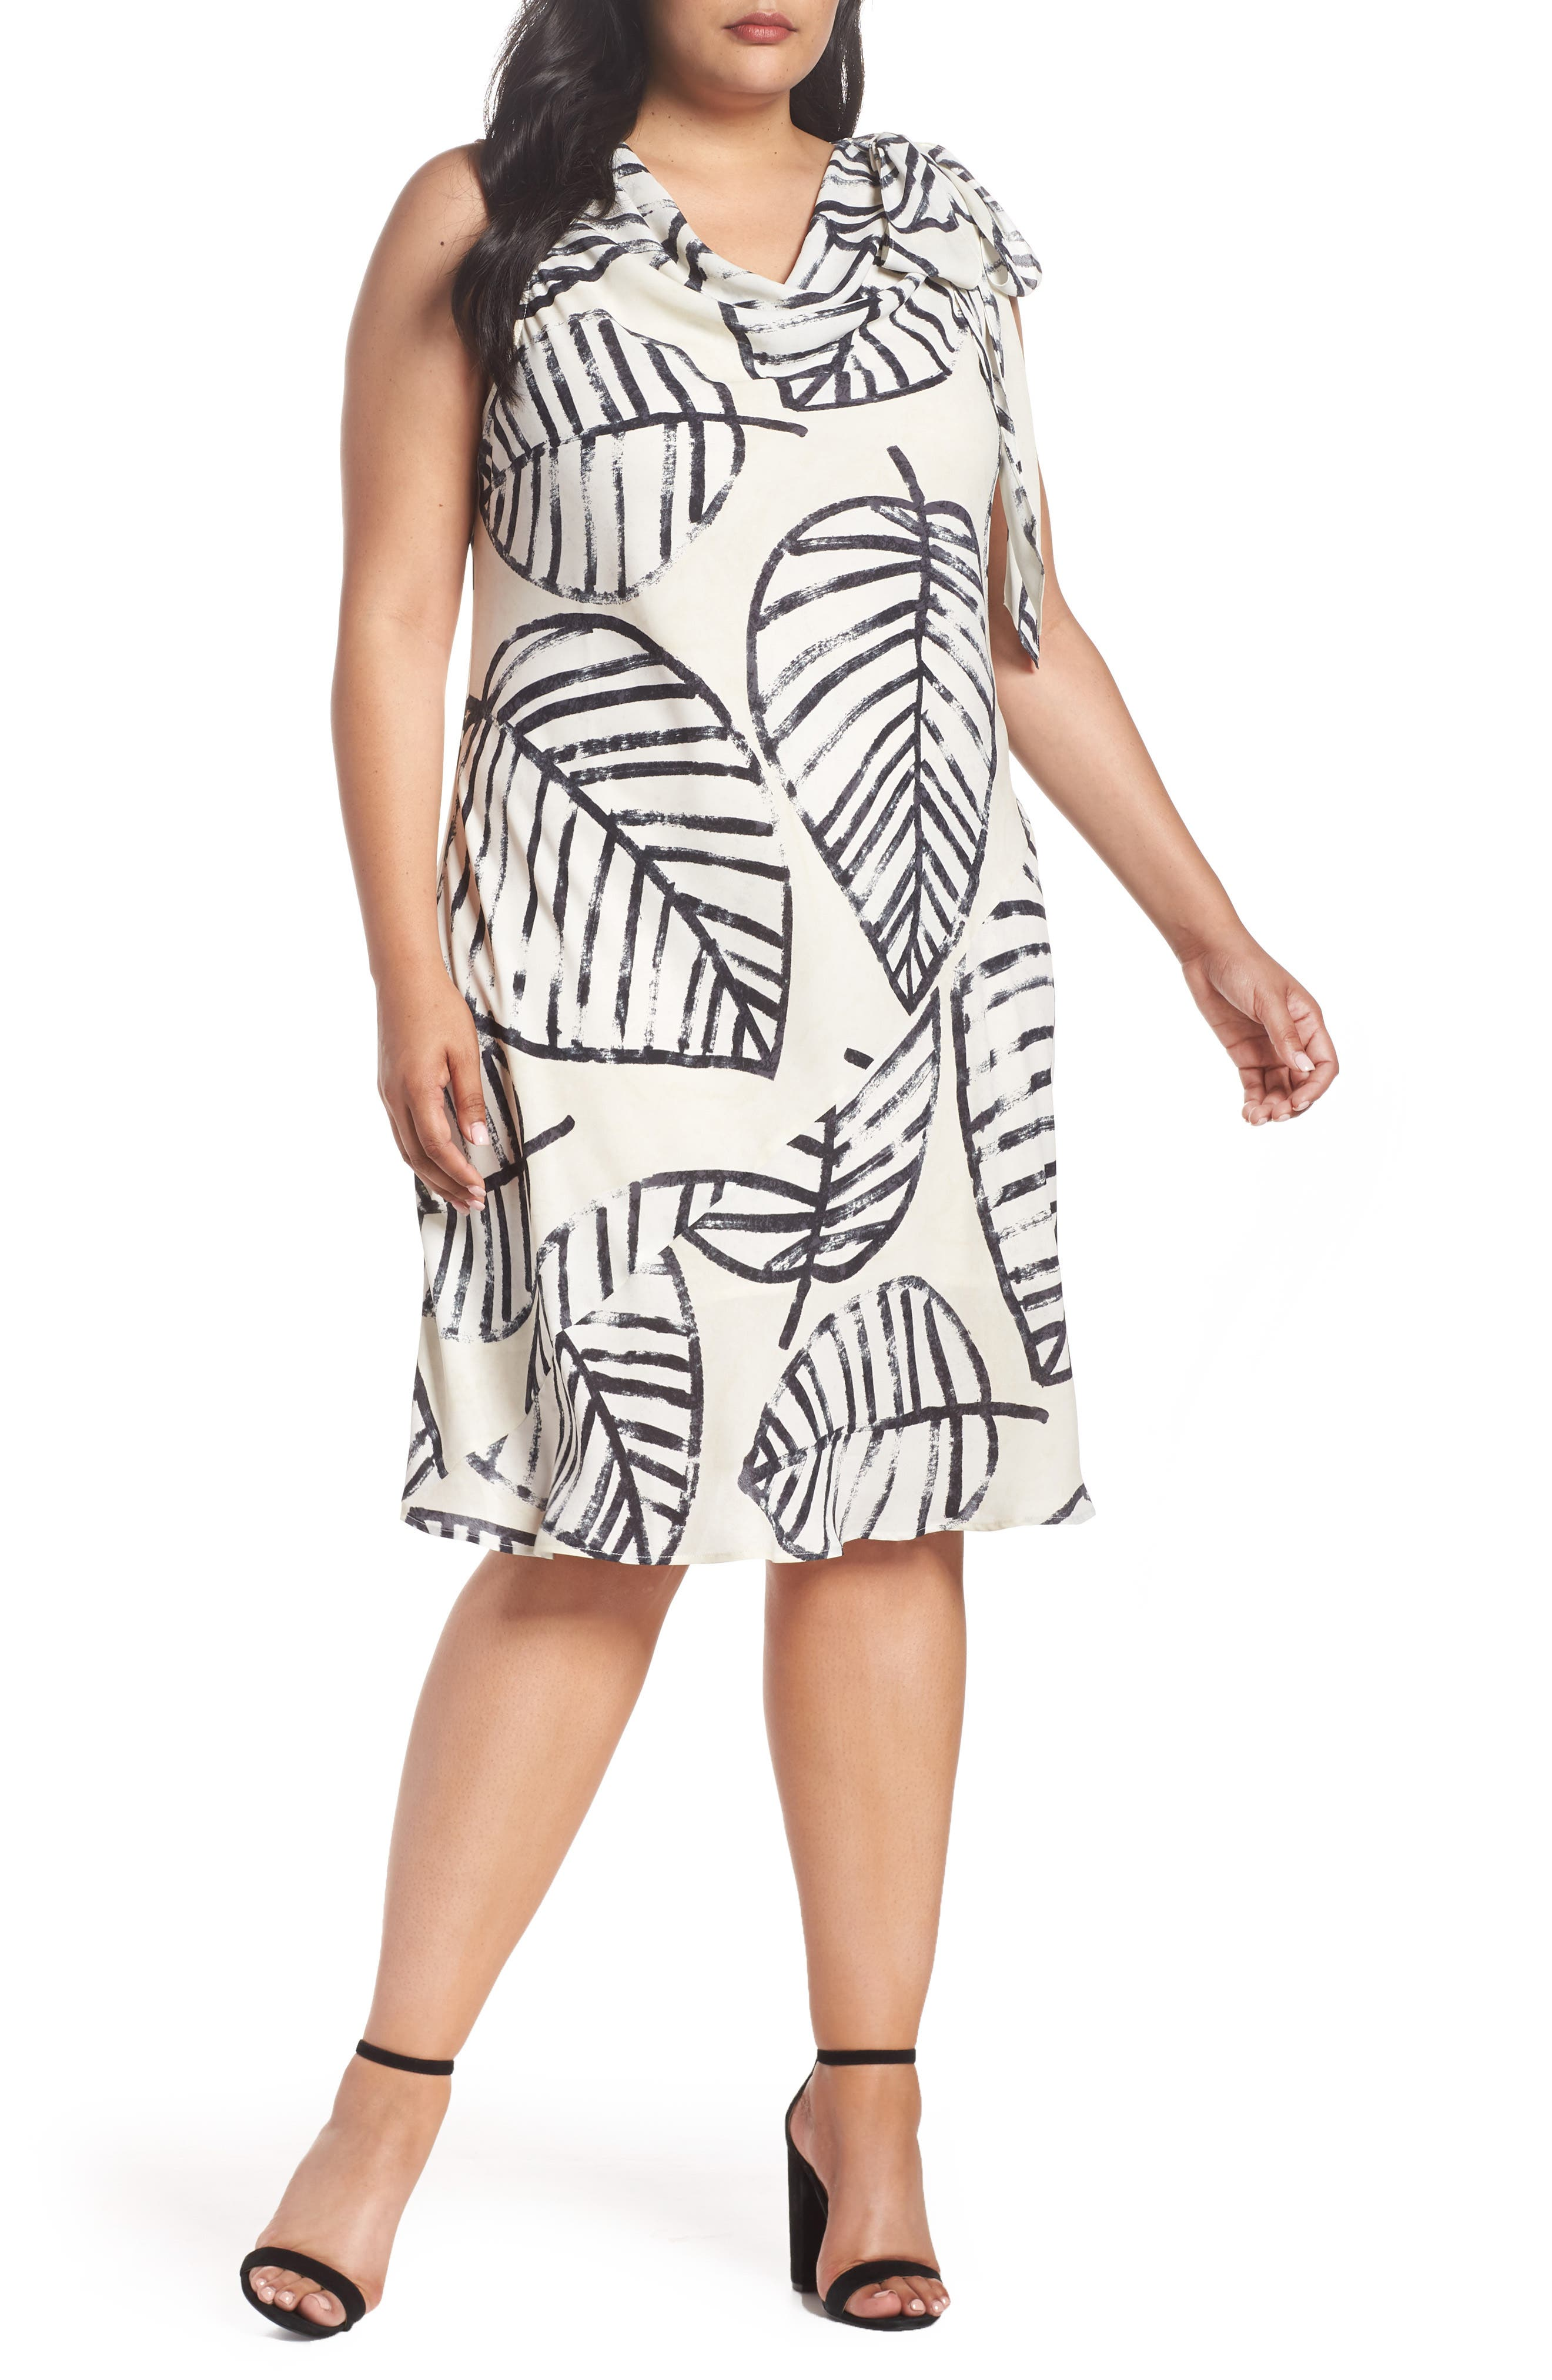 Alternate Image 1 Selected - NIC+ZOE Etched Leaves Tie Dress (Plus Size)